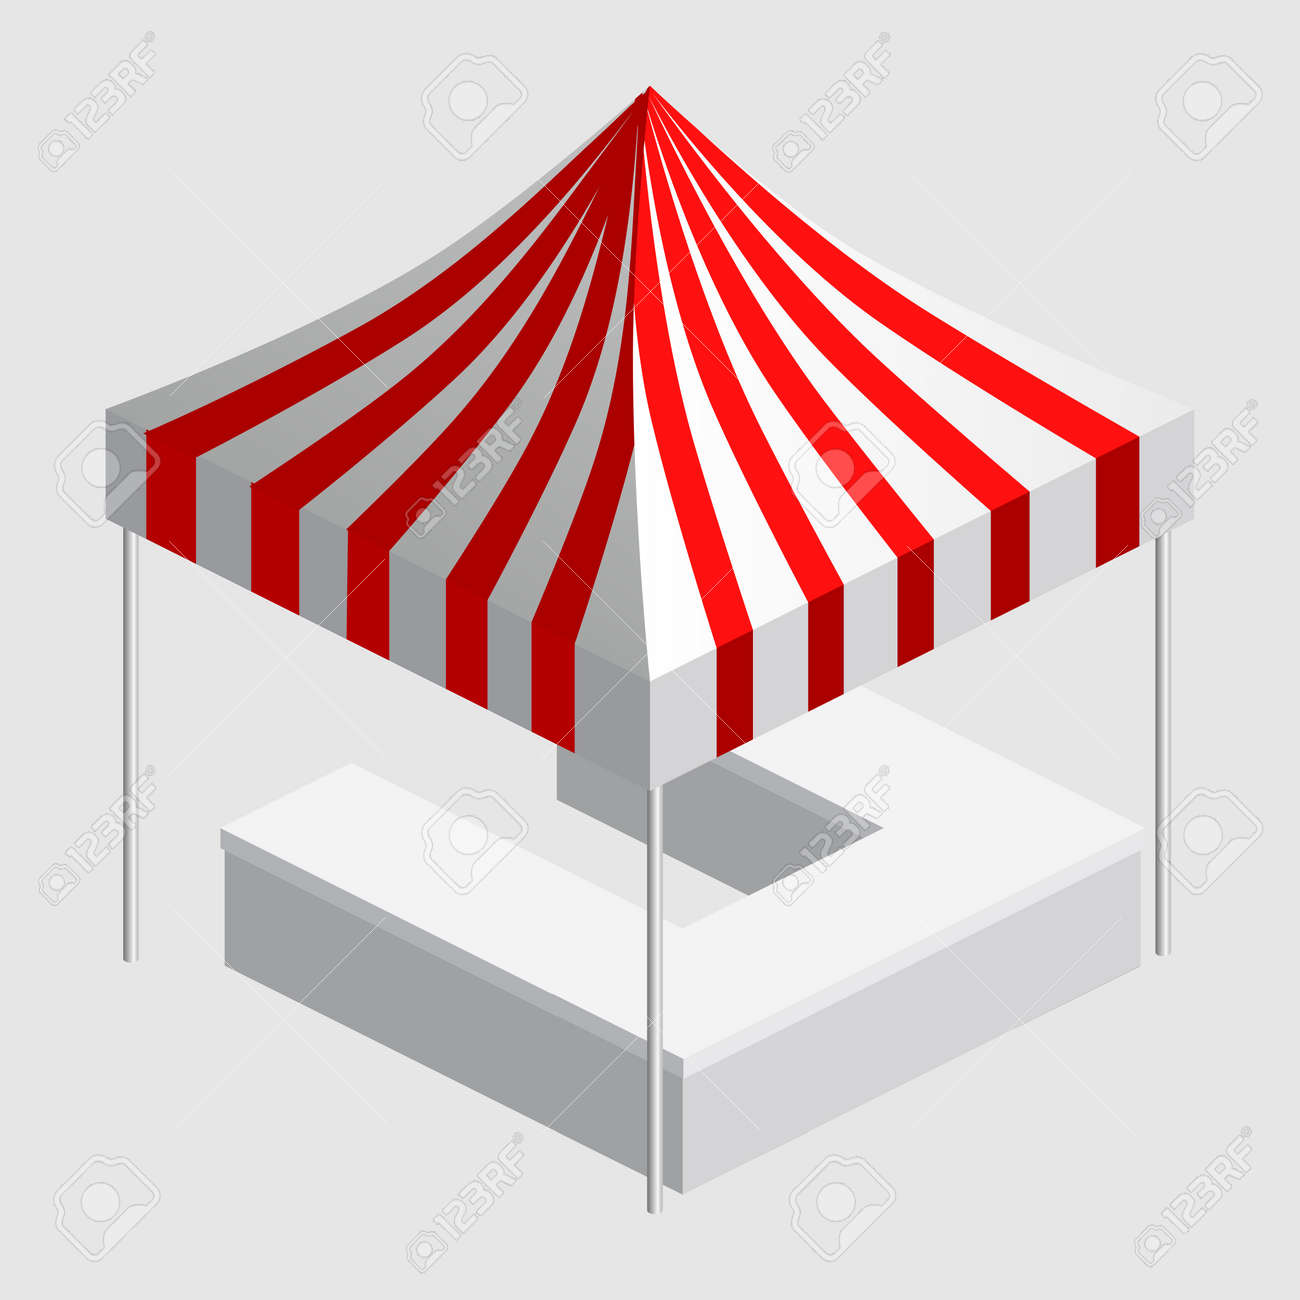 Isometric market stall, tent. Street awning canopy kiosk, counter, white red strings for fair, street food, market, grocery goods. Vector isolated - 171221052